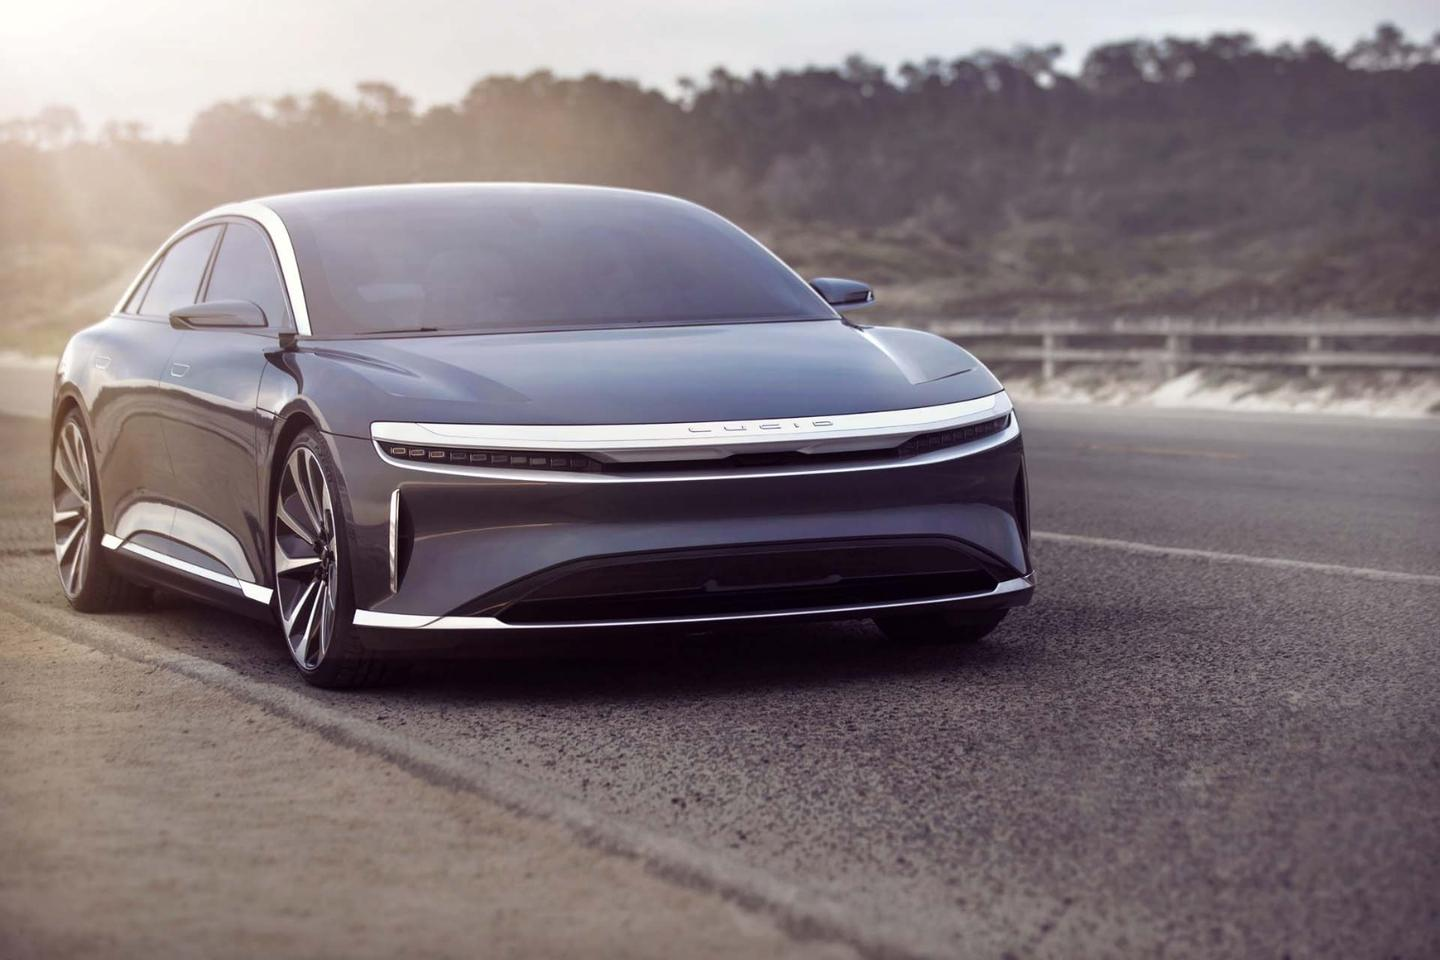 A billion-plus dollar investment through the Saudi Public Investment fund should help bring the all-electric Lucid Air into production for 2020